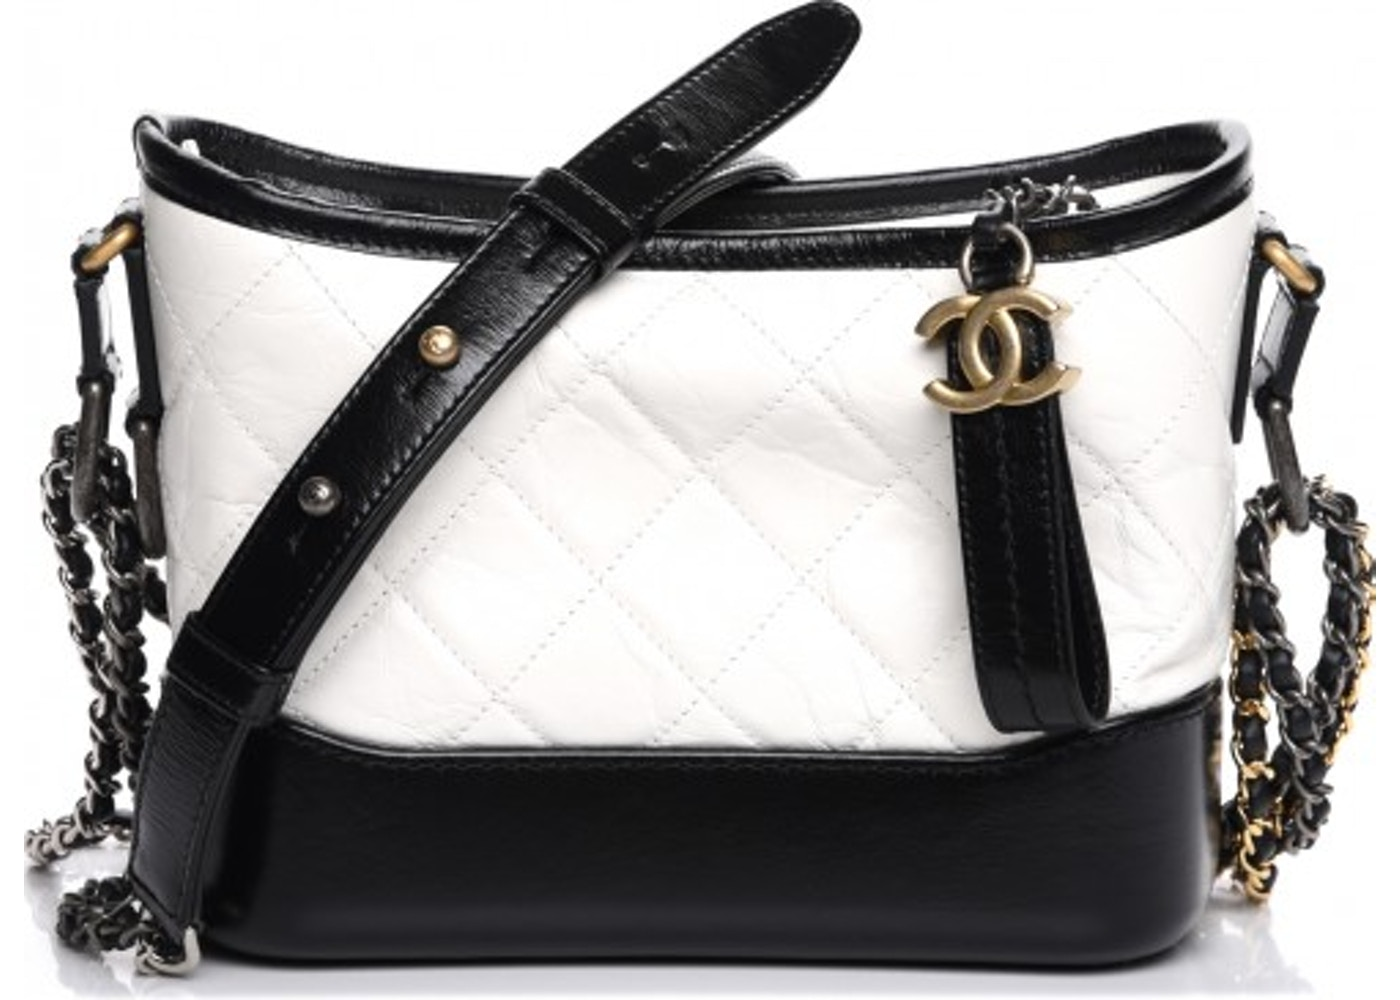 cc5f12cd7f81 Chanel Gabrielle Hobo Quilted Diamond Small Black/White. Quilted Diamond  Small Black/White